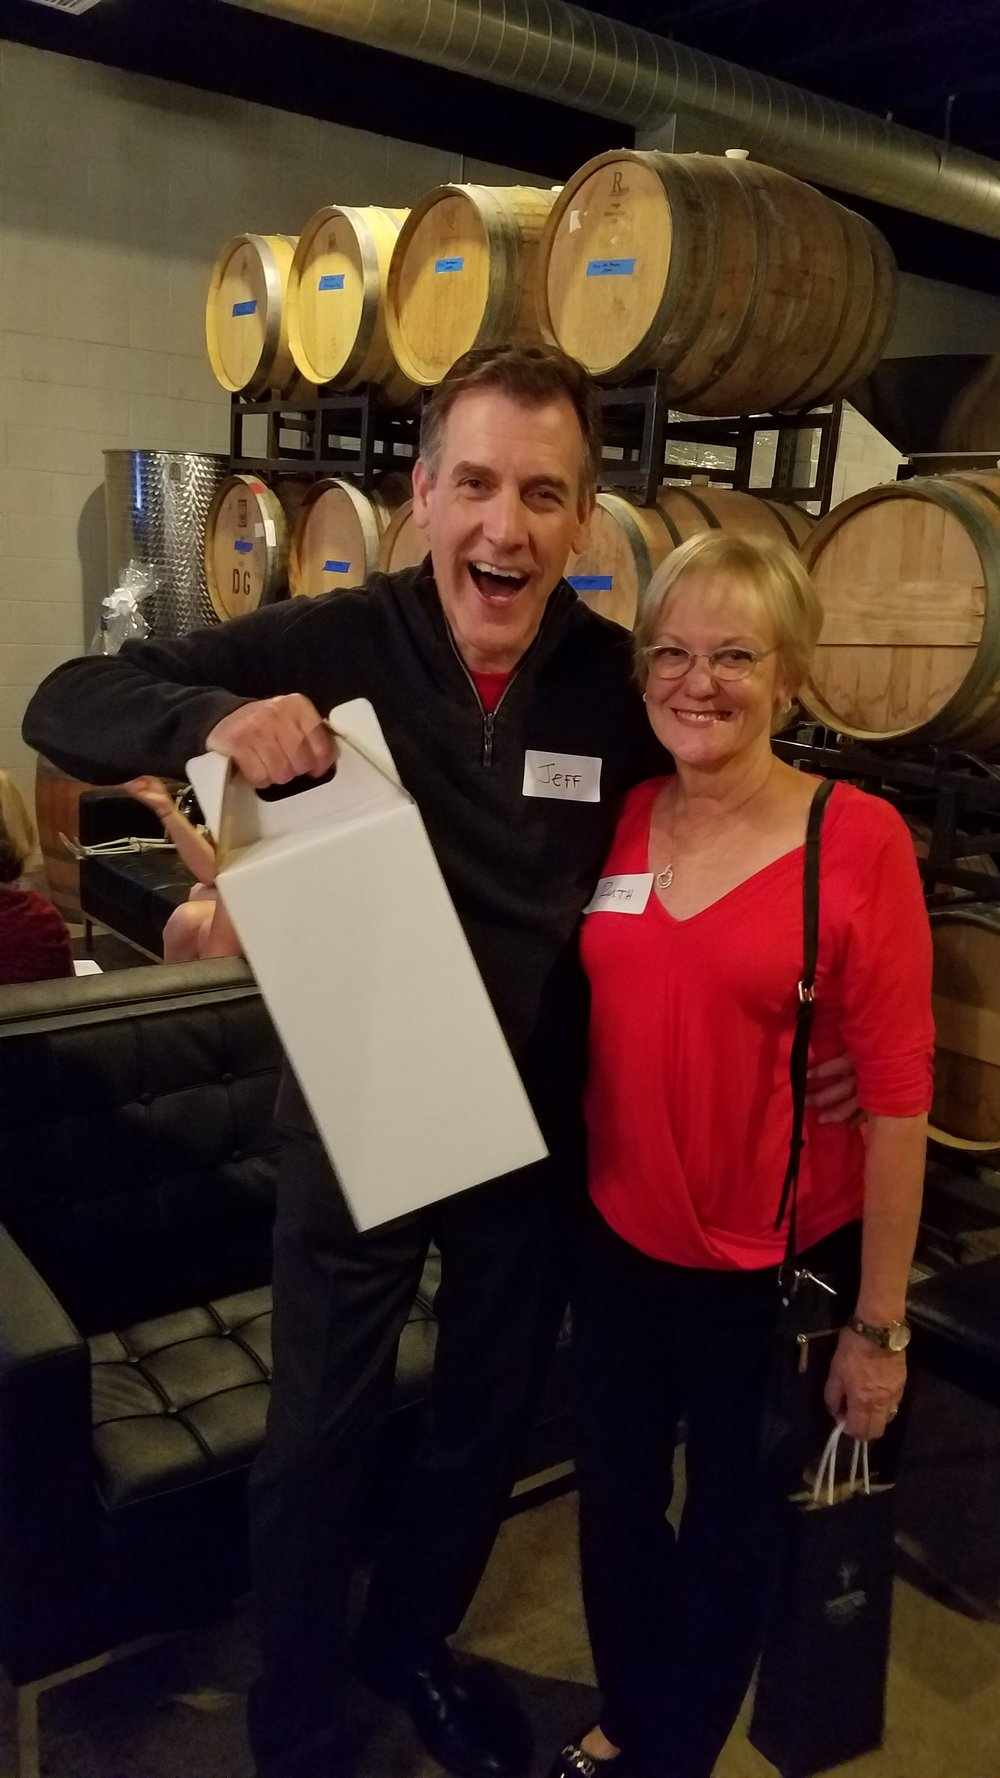 Jeff Schroeder of Jack In The Box and Coffee Bean & Tea fame take home four bottles of BK Cellars wine as they collectively placed second and third.